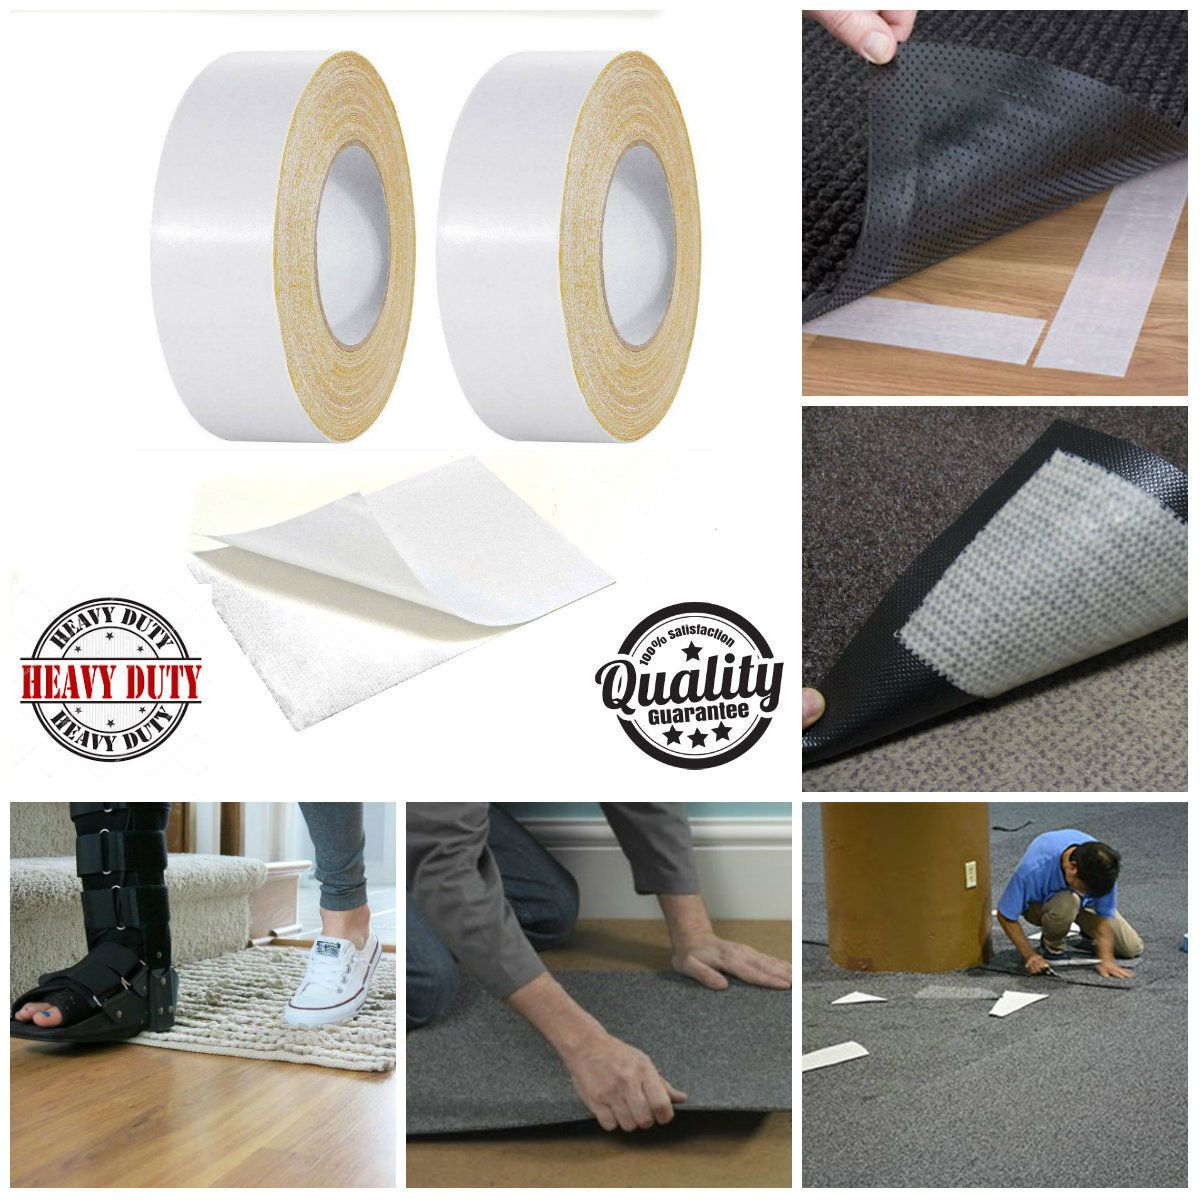 Details about 50MM X 3M Carpet Rug DIY Double Sided Tape